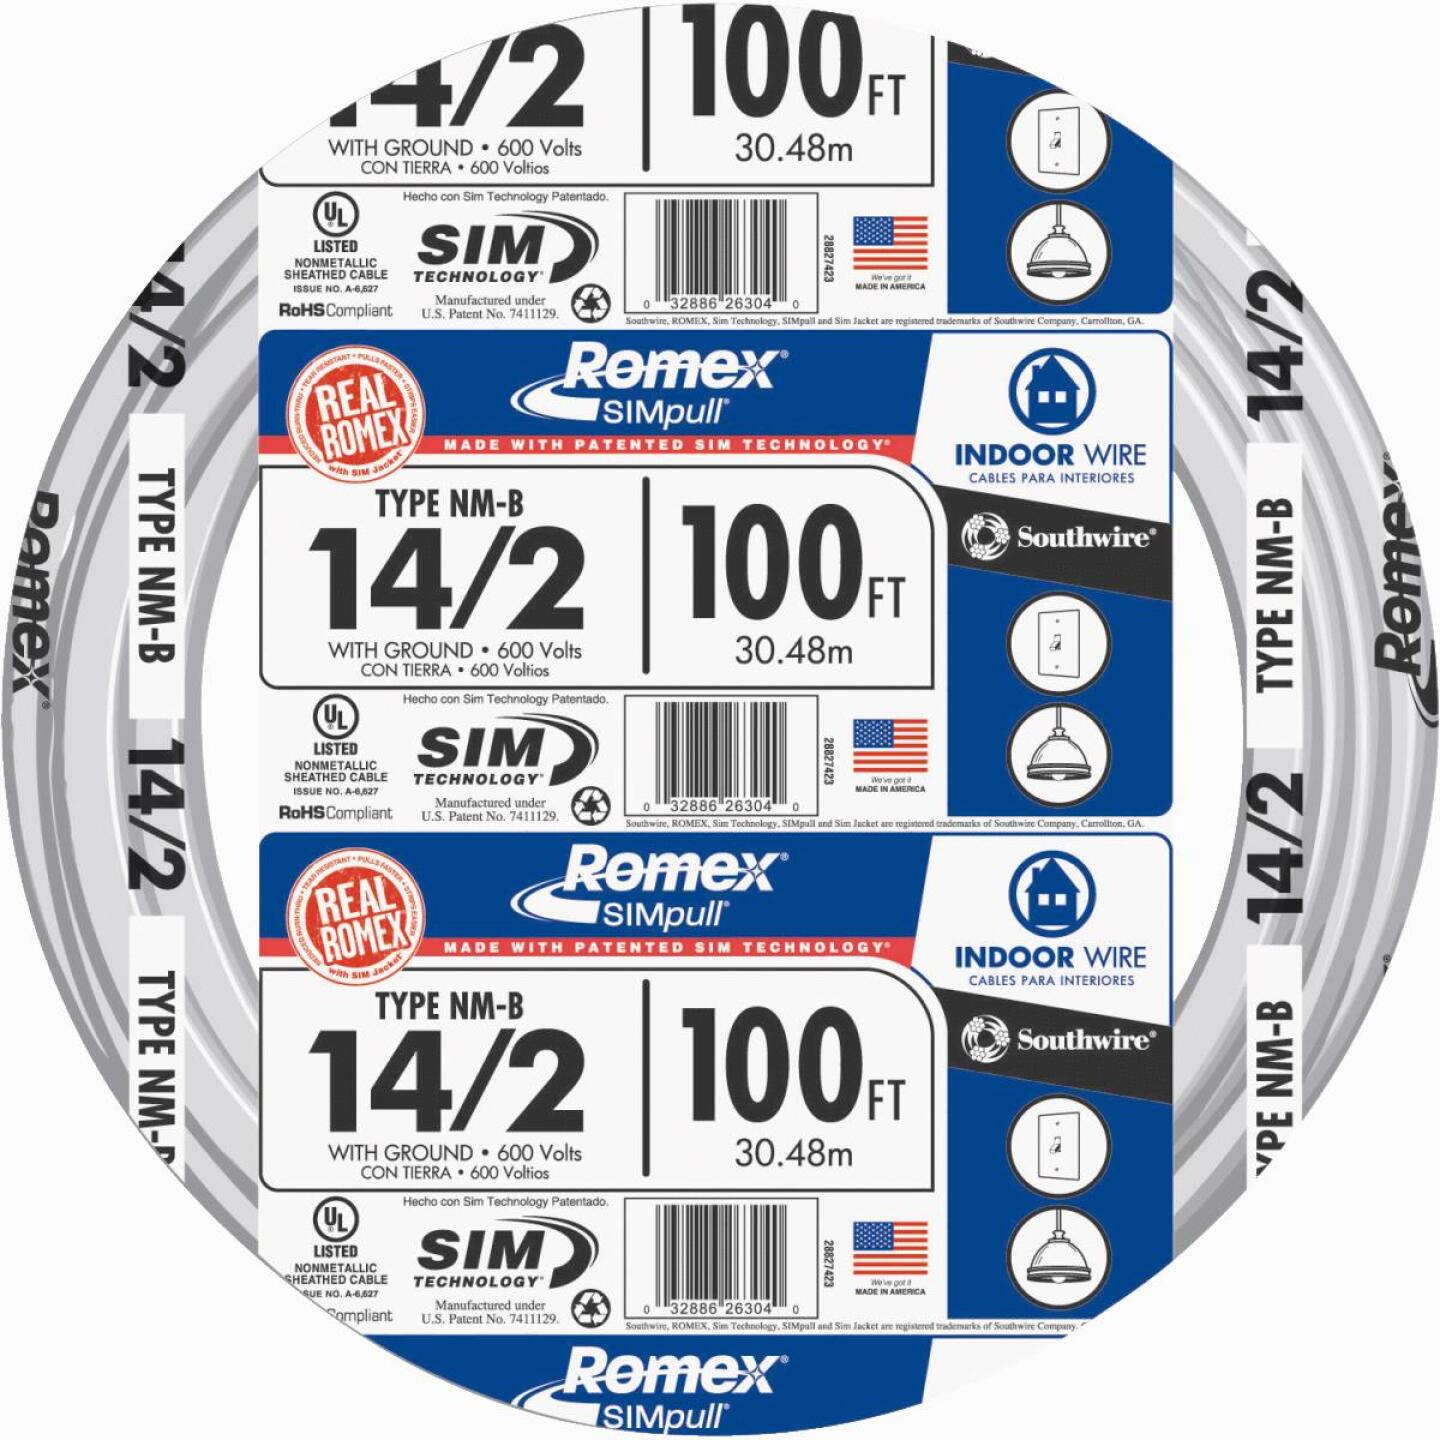 Romex 100 Ft. 14-2 Solid White NMW/G Wire Image 1